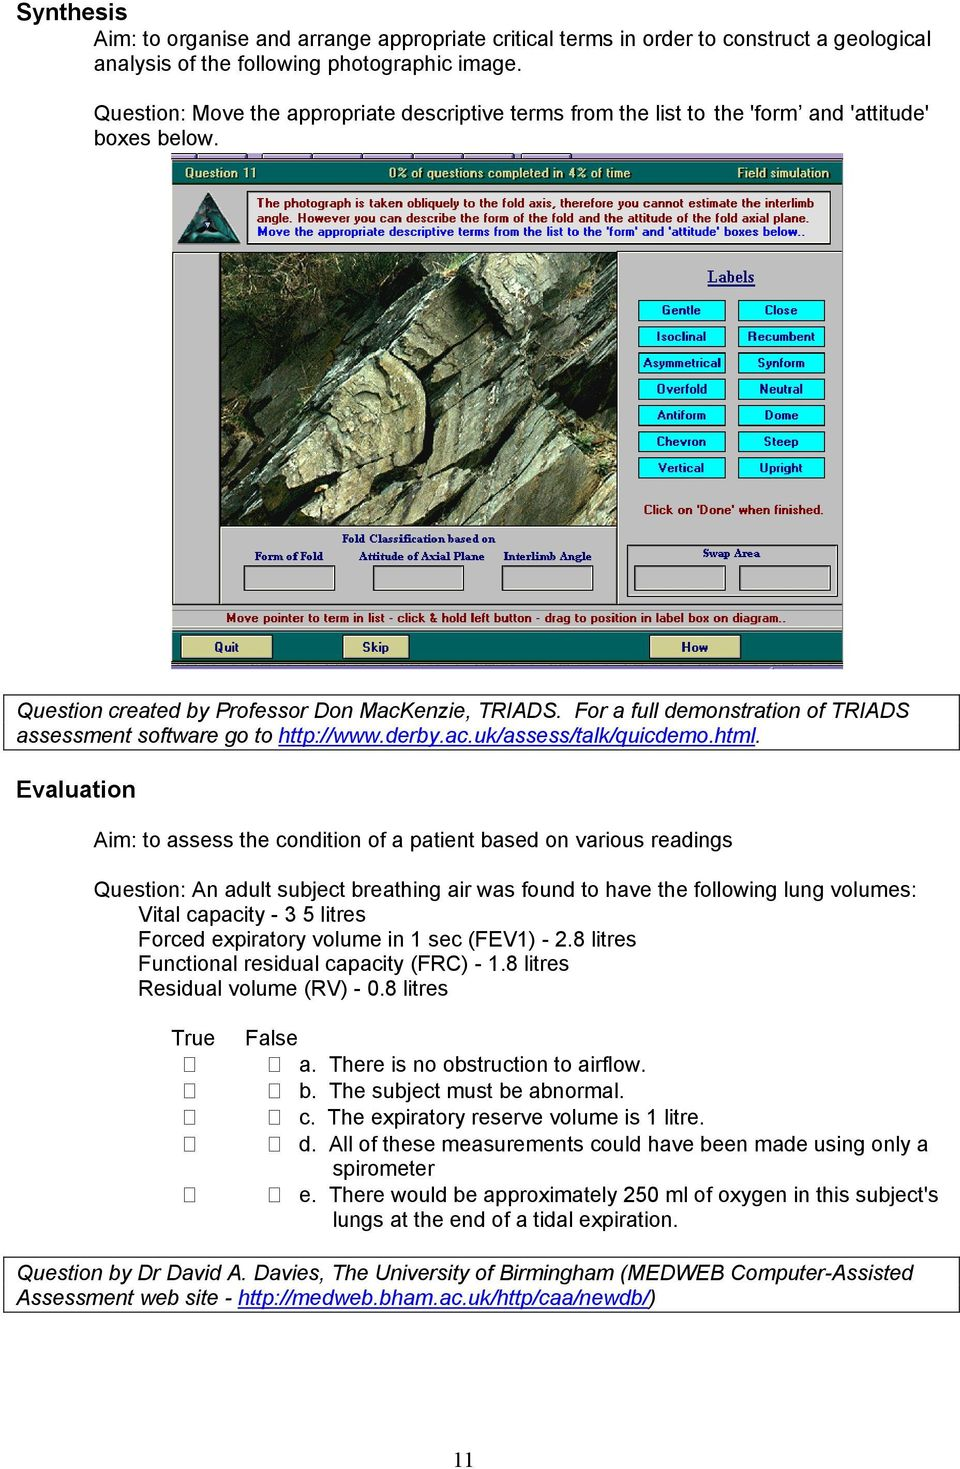 For a full demonstration of TRIADS assessment software go to http://www.derby.ac.uk/assess/talk/quicdemo.html.